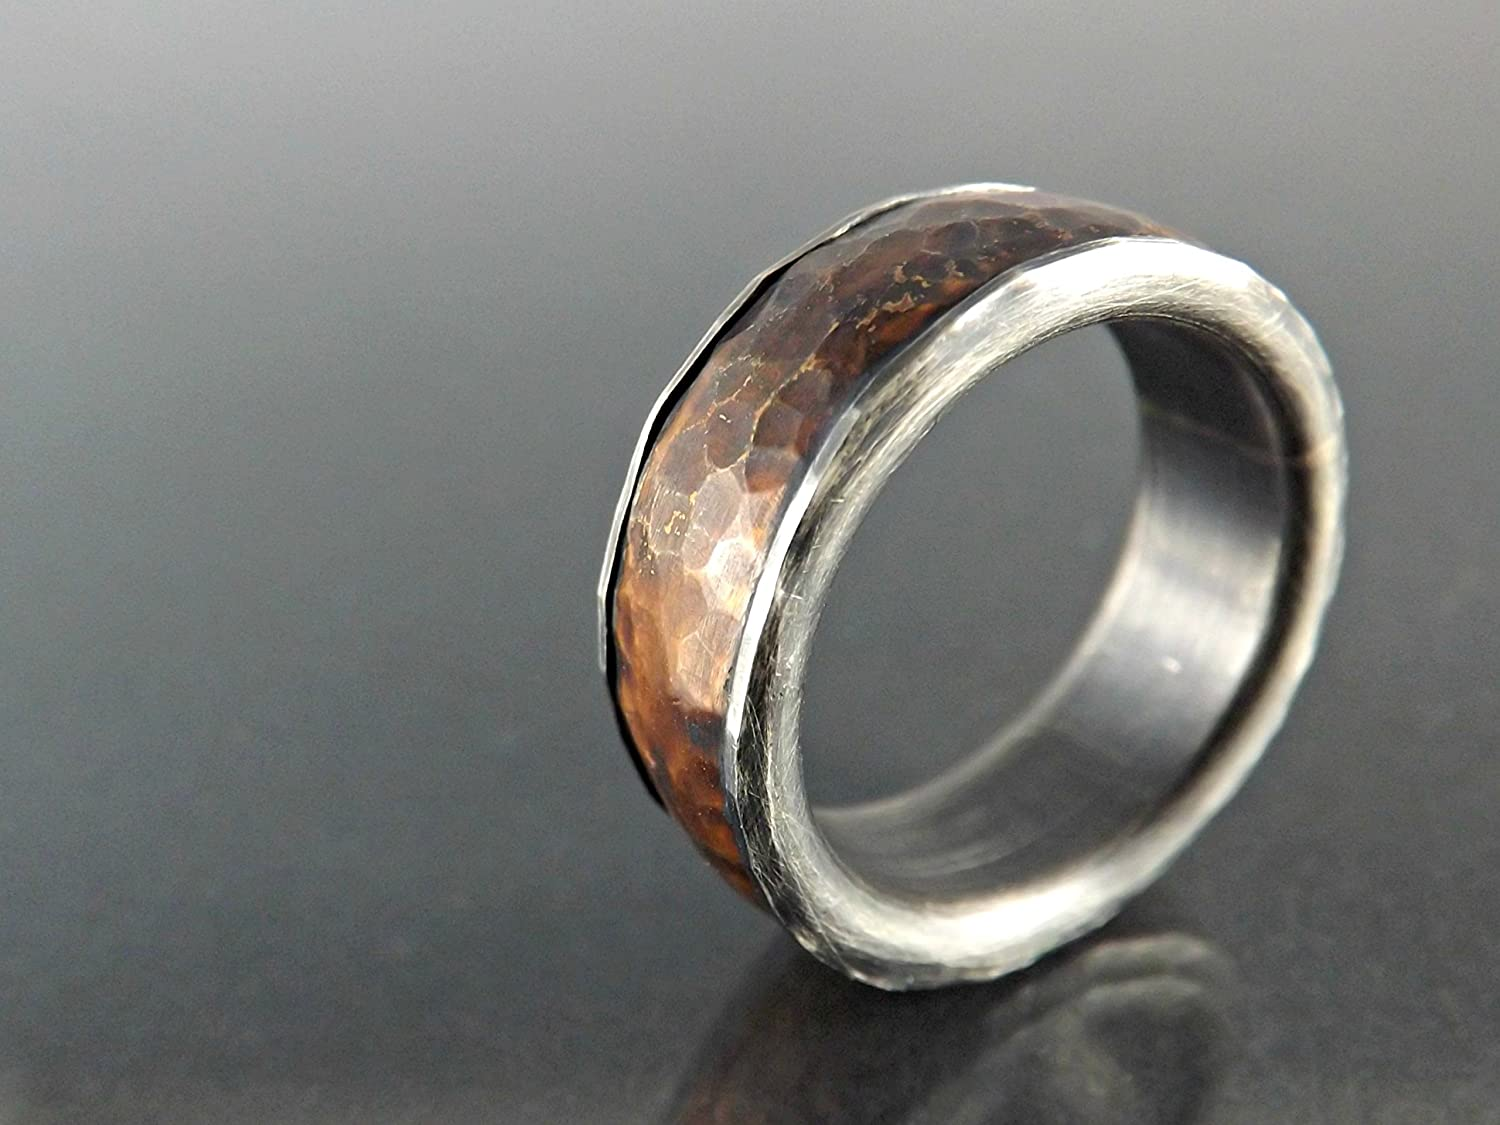 broach minimalist releases fiber of jewelry the htm ring by world carbon rings memorial forged